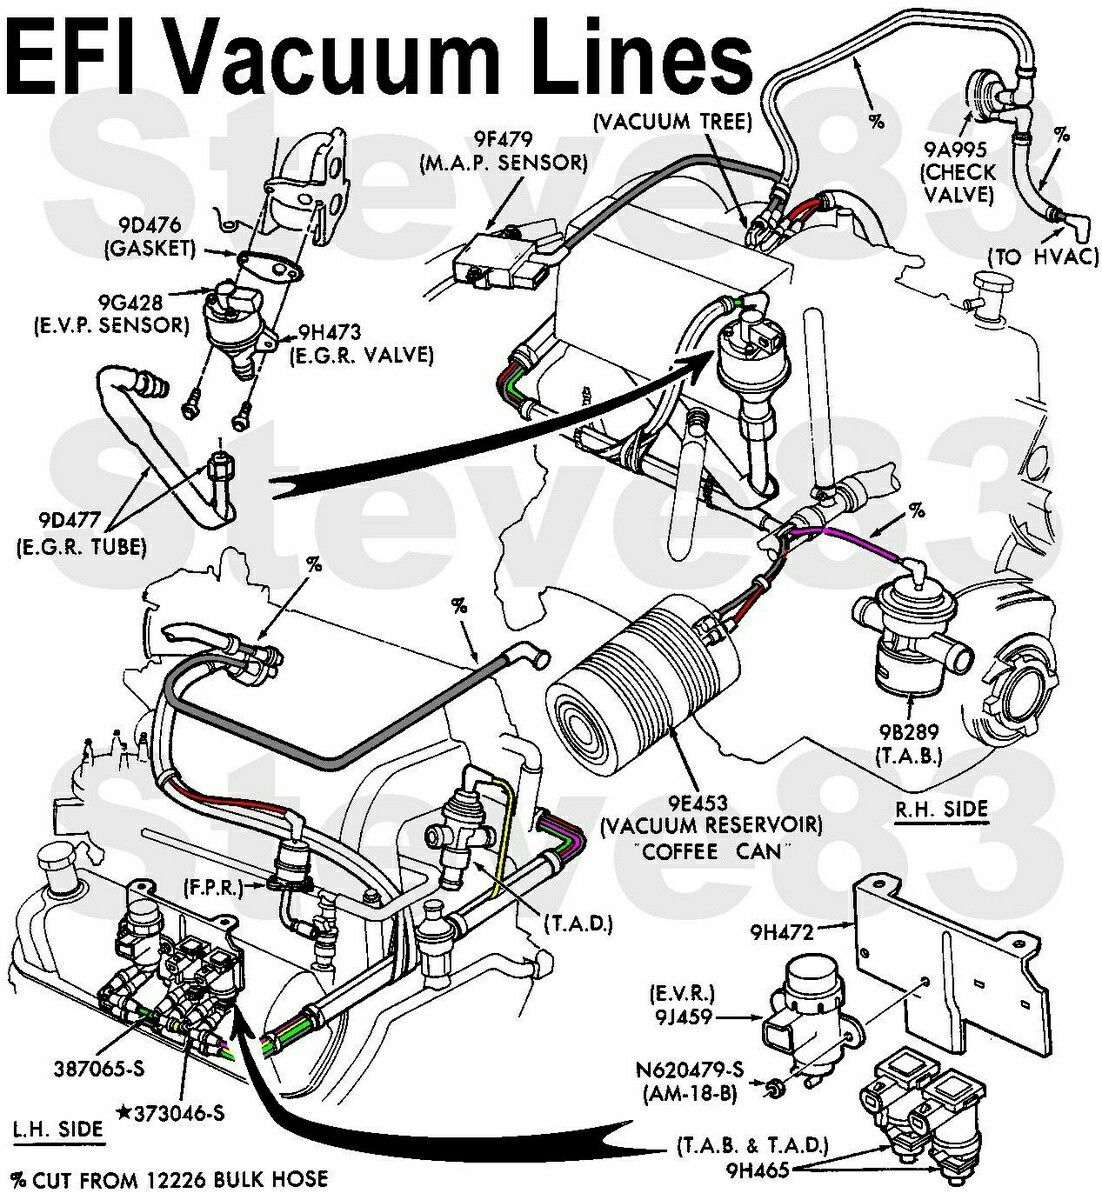 small resolution of pin by jose zepeda on bike ford f150 xlt ford 351 1995 ford f150 ford f 150 cooling system diagram furthermore 1963 chevy pickup truck